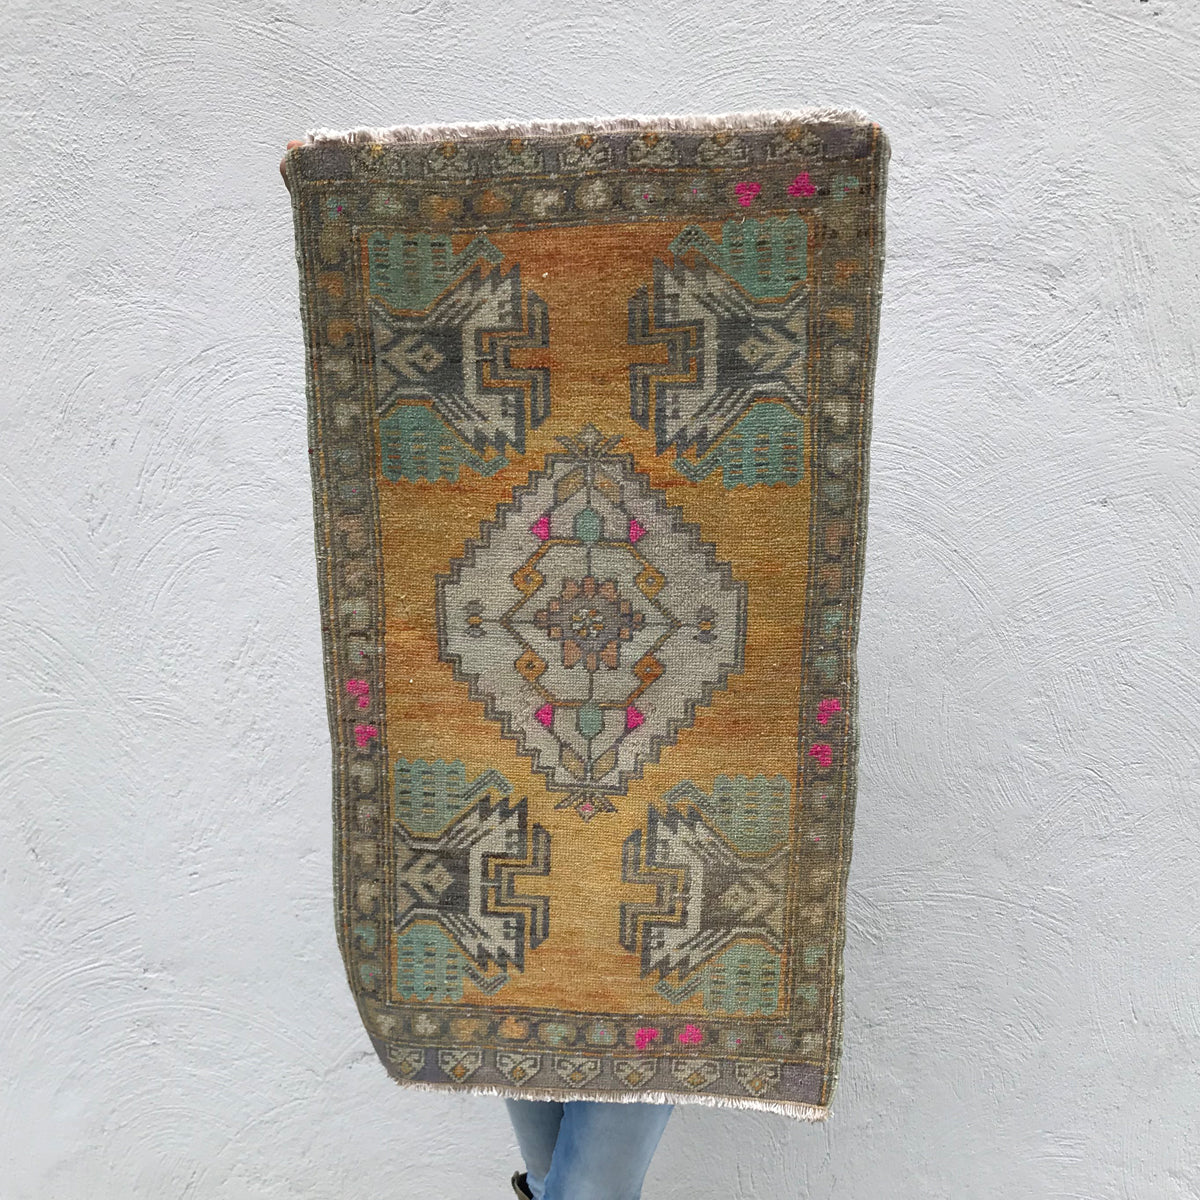 This small handwoven vintage Turkish rug has gorgeous warm colors! Great for entryways, bathrooms, kitchens and layering. 20x35 inches.